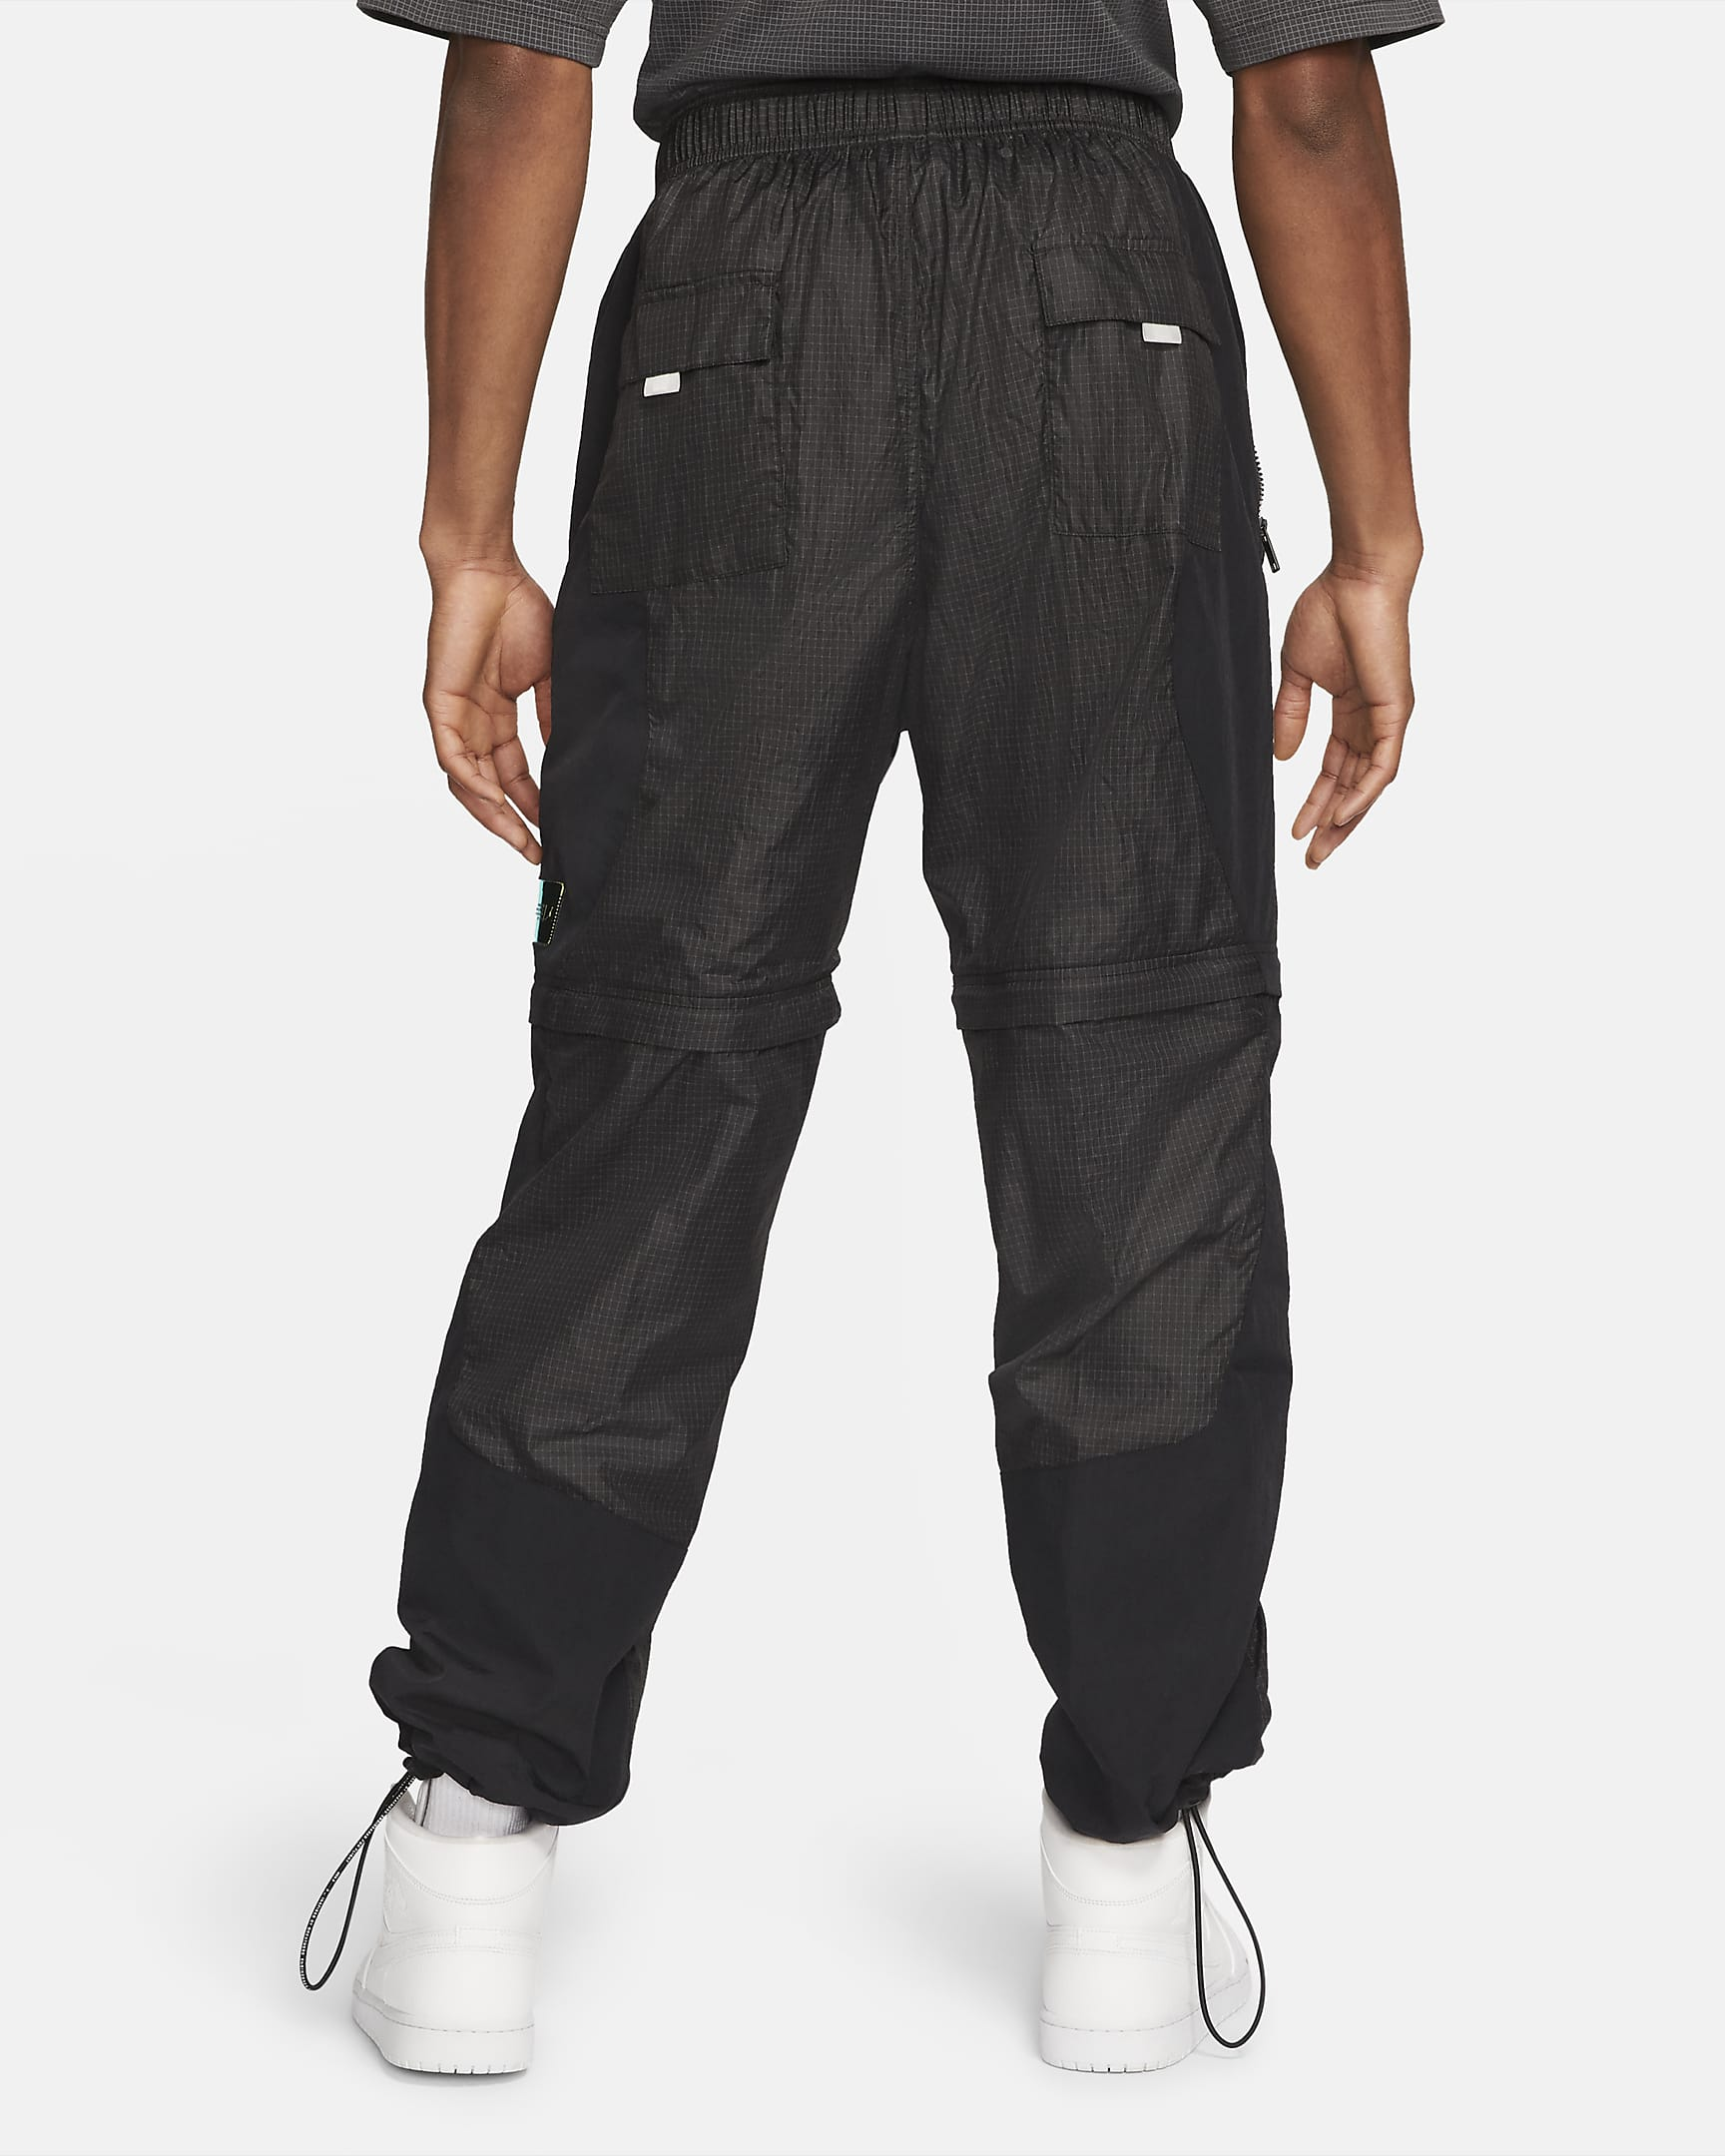 jordan-23-engineered-mens-convertible-track-pants-zWp7wJ-8